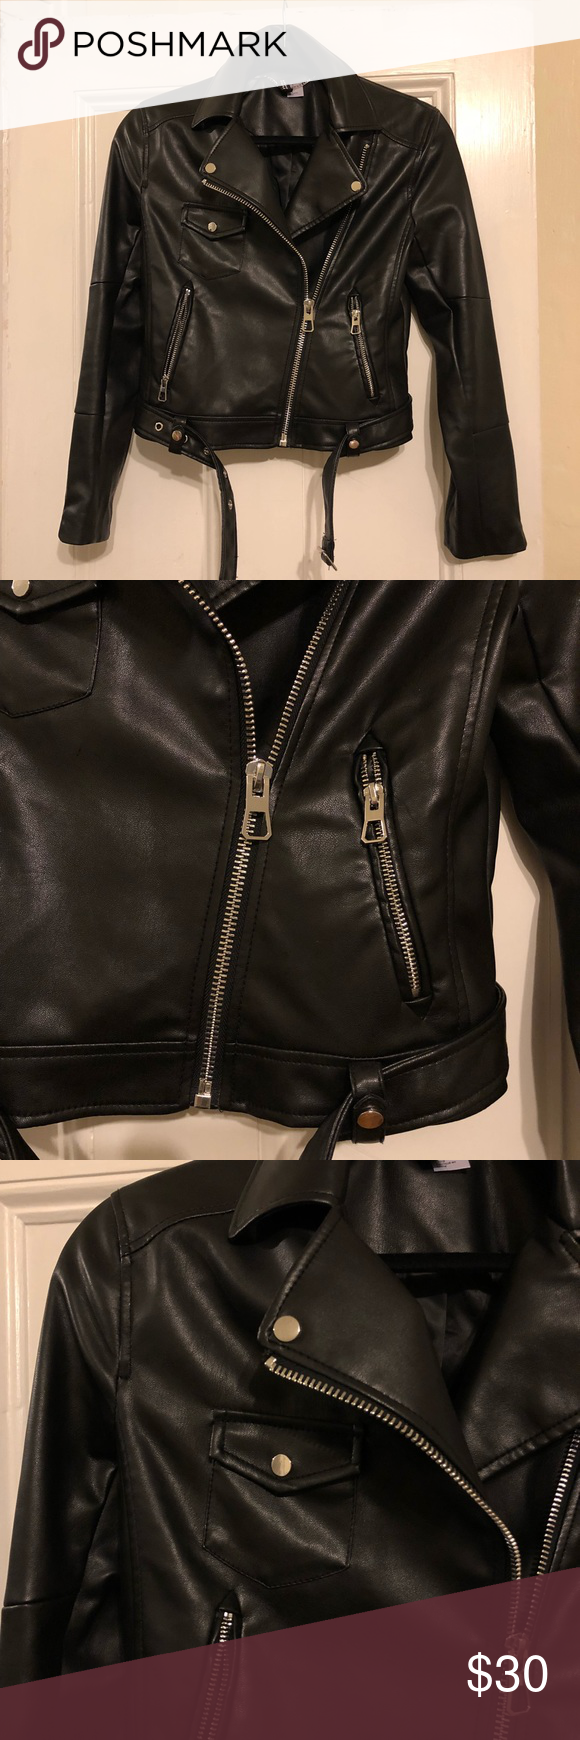 H&M faux leather jacket Faux leather jacket, never worn